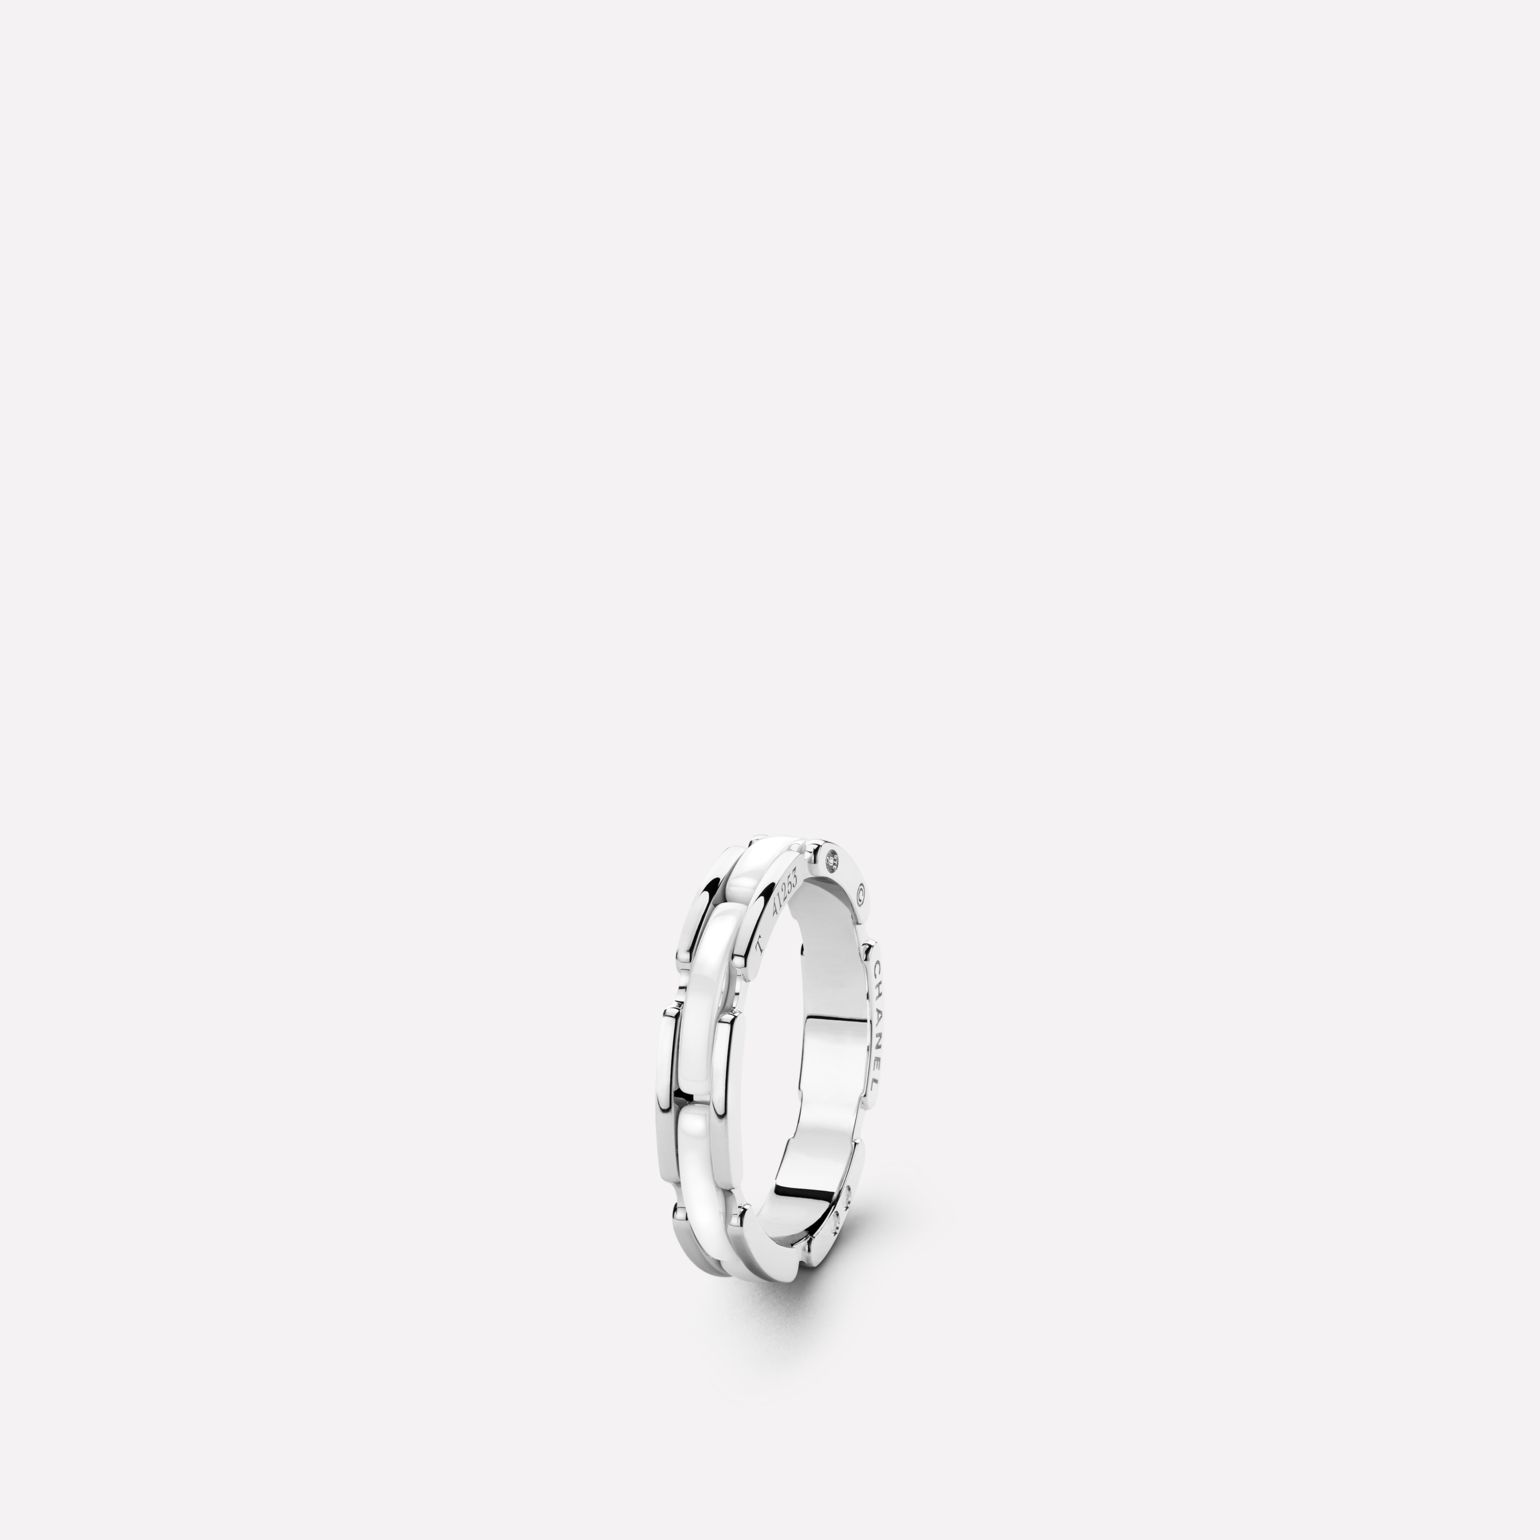 Ultra ring Ultra ring, in white ceramic and 18K white gold